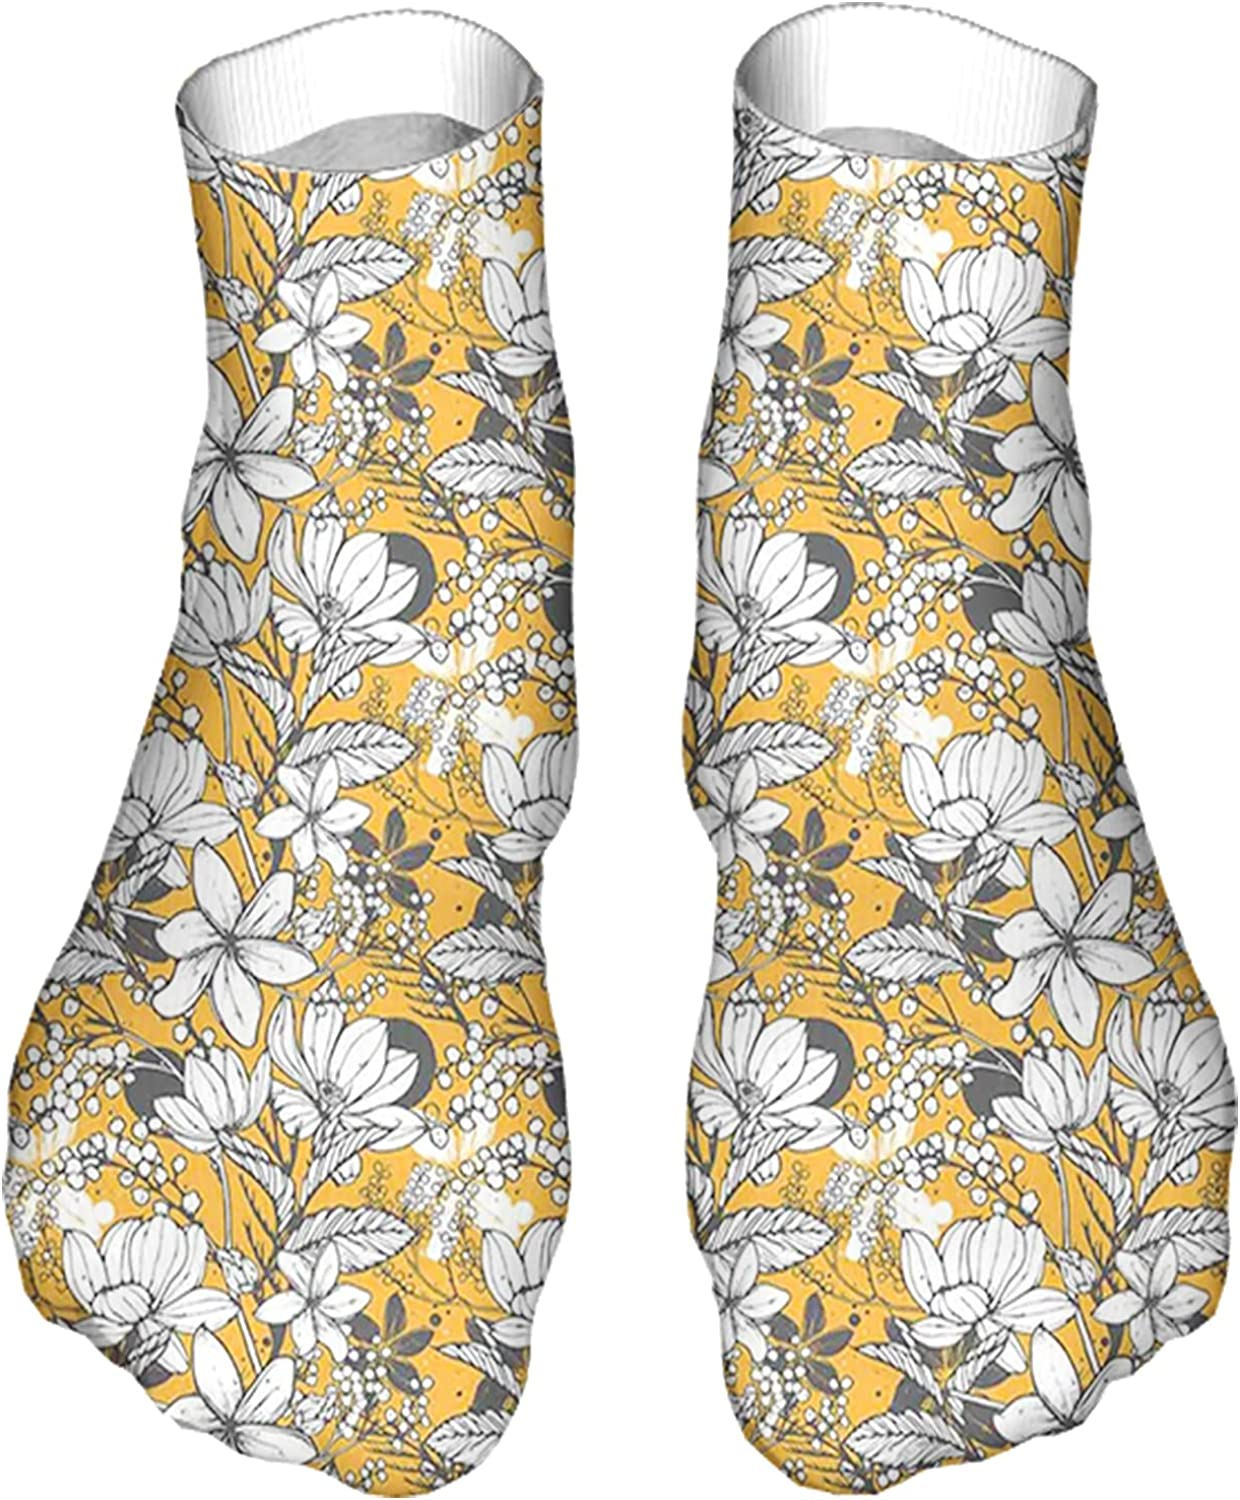 Men's and Women's Funny Casual Socks Hibiscus Plant Exotic Beach Island Theme with Tropical Sea